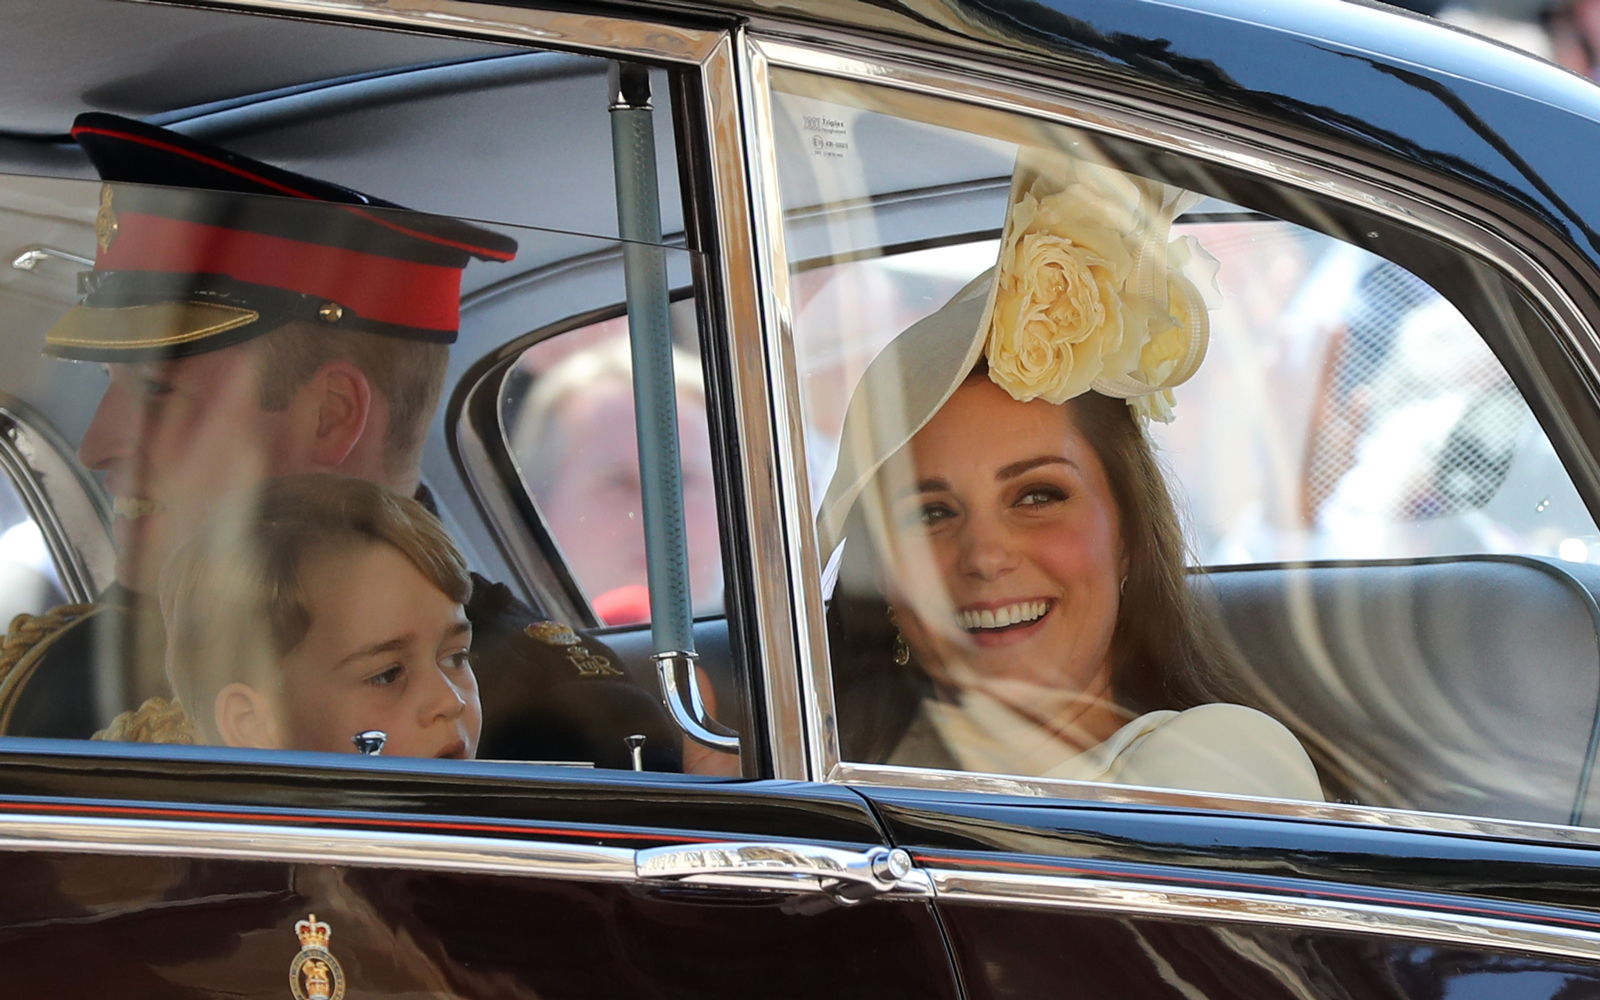 Prince William and Catherine Duchess of Cambridge in car with son, Prince George